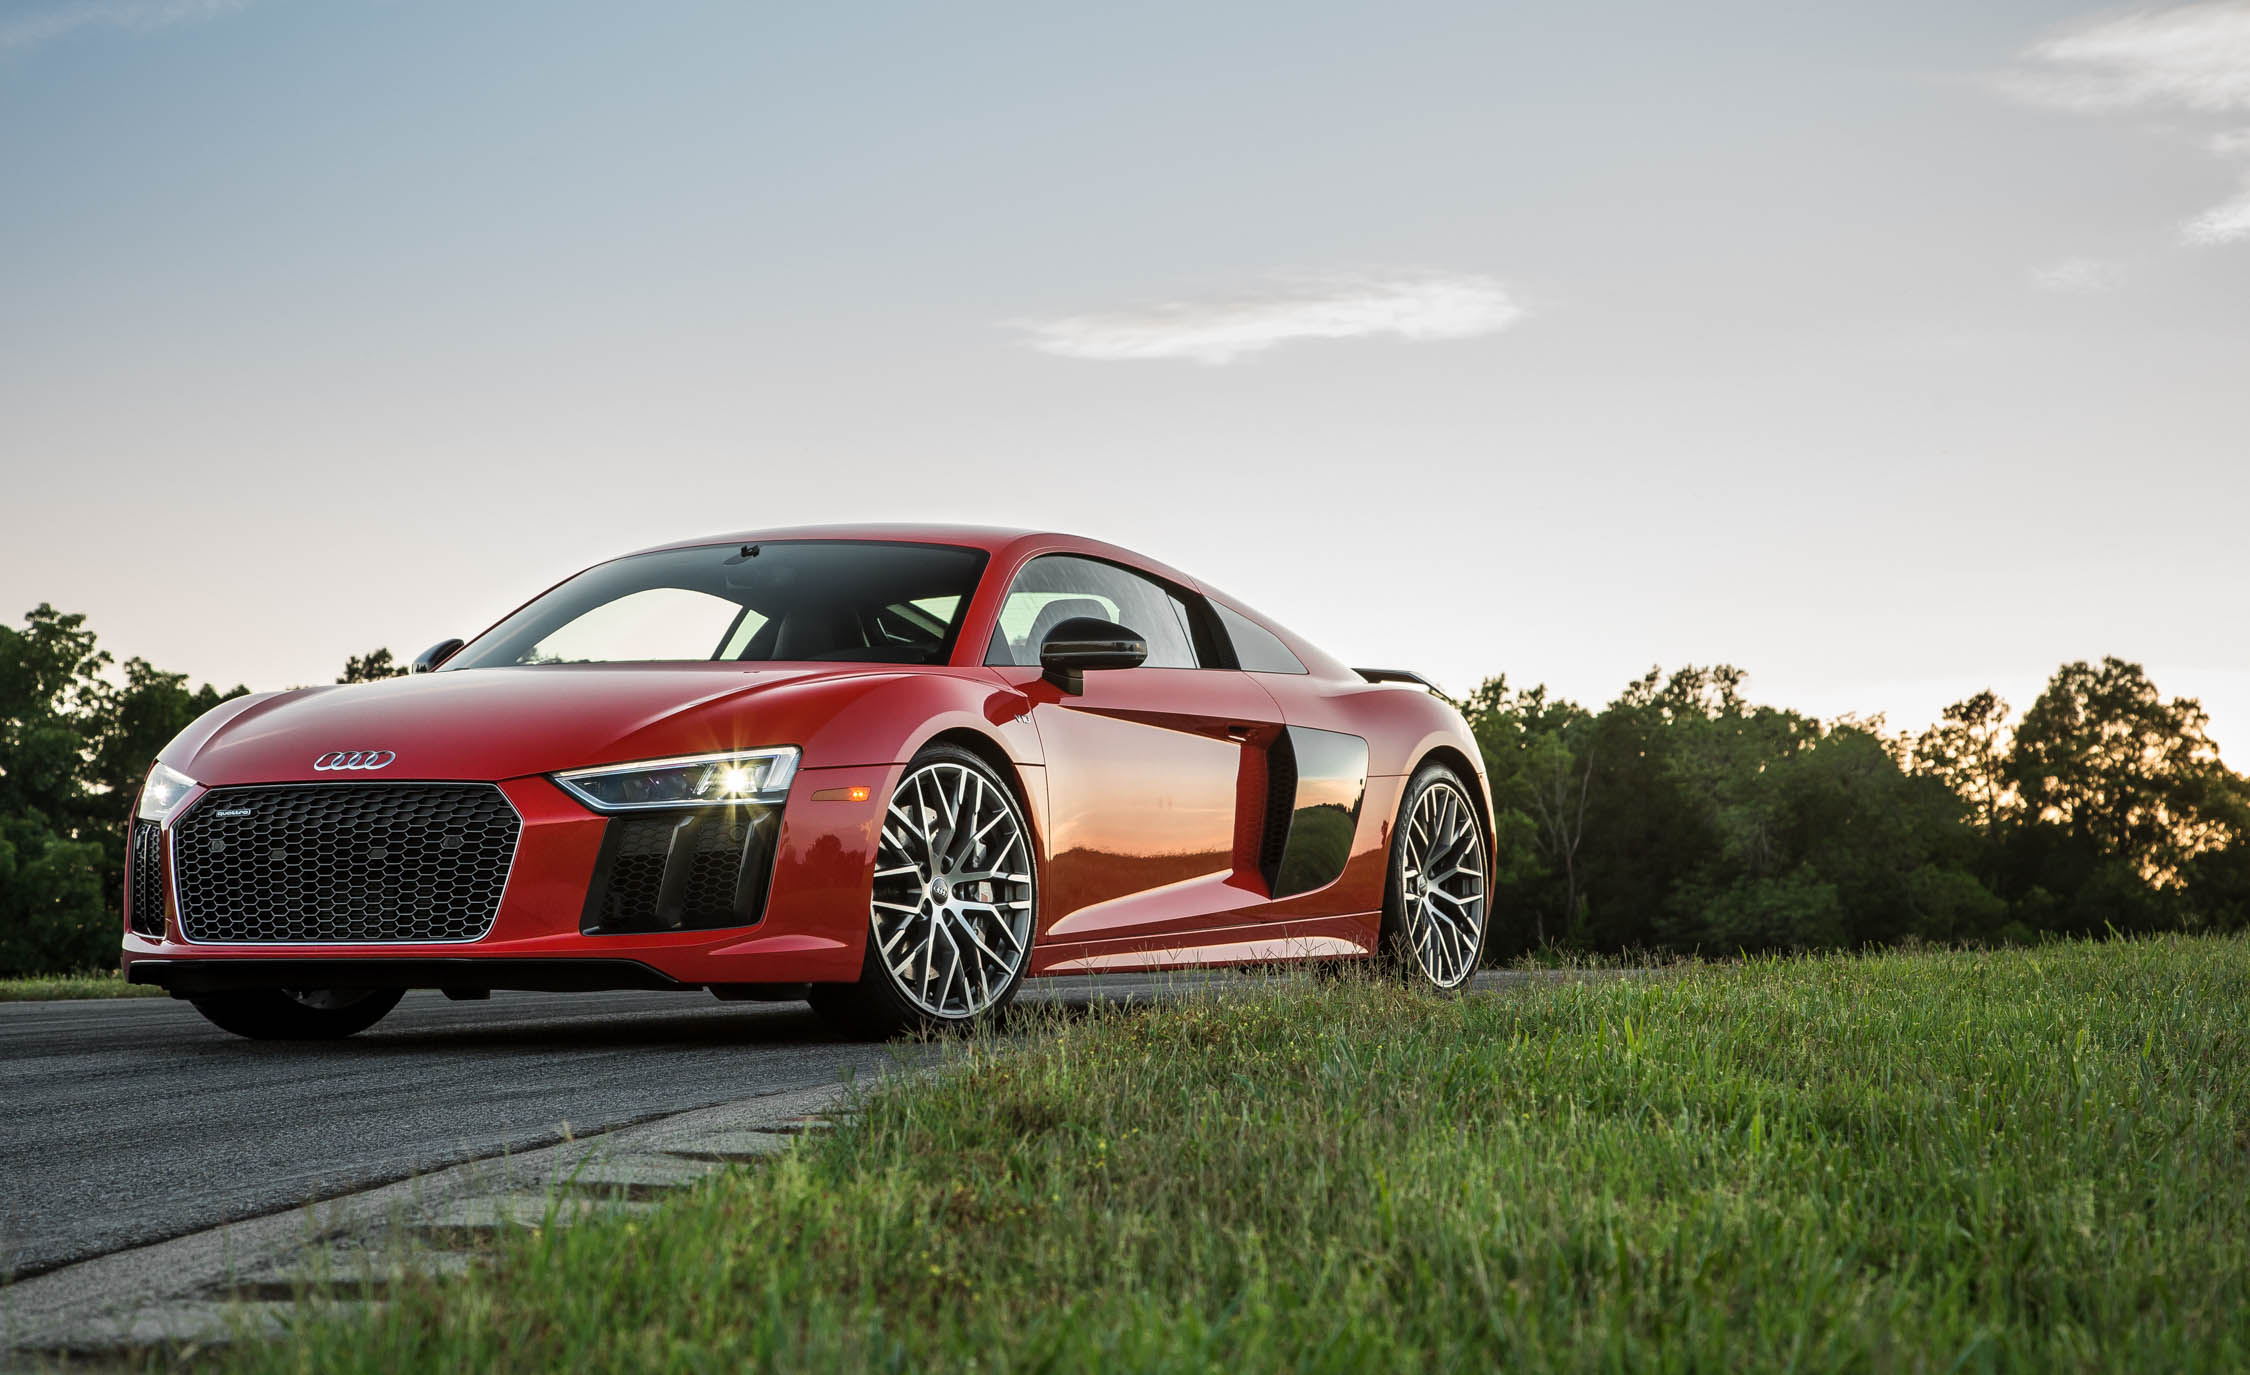 2017 Audi R8 V 10 Plus (Photo 6 of 19)